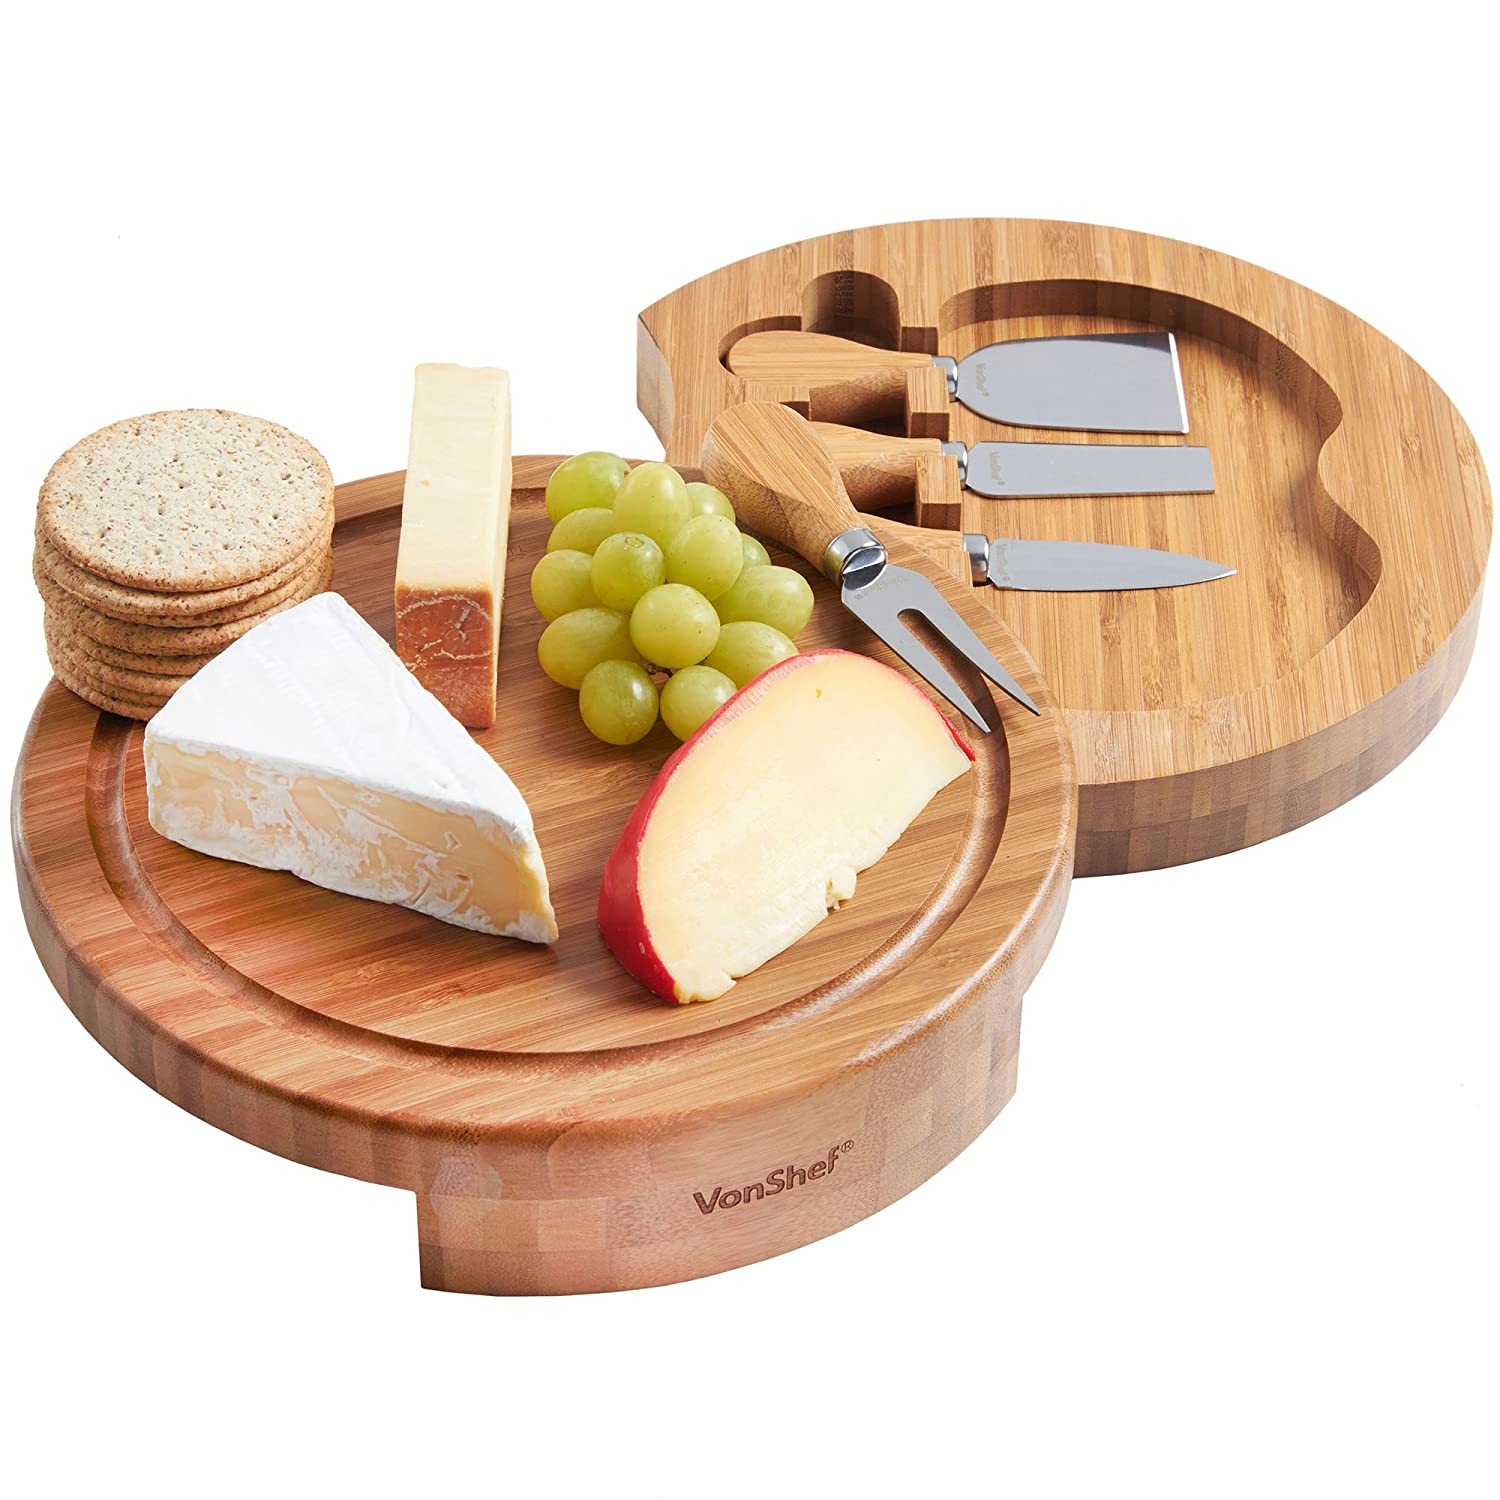 VonShef Round Bamboo Cheese Board with Knives